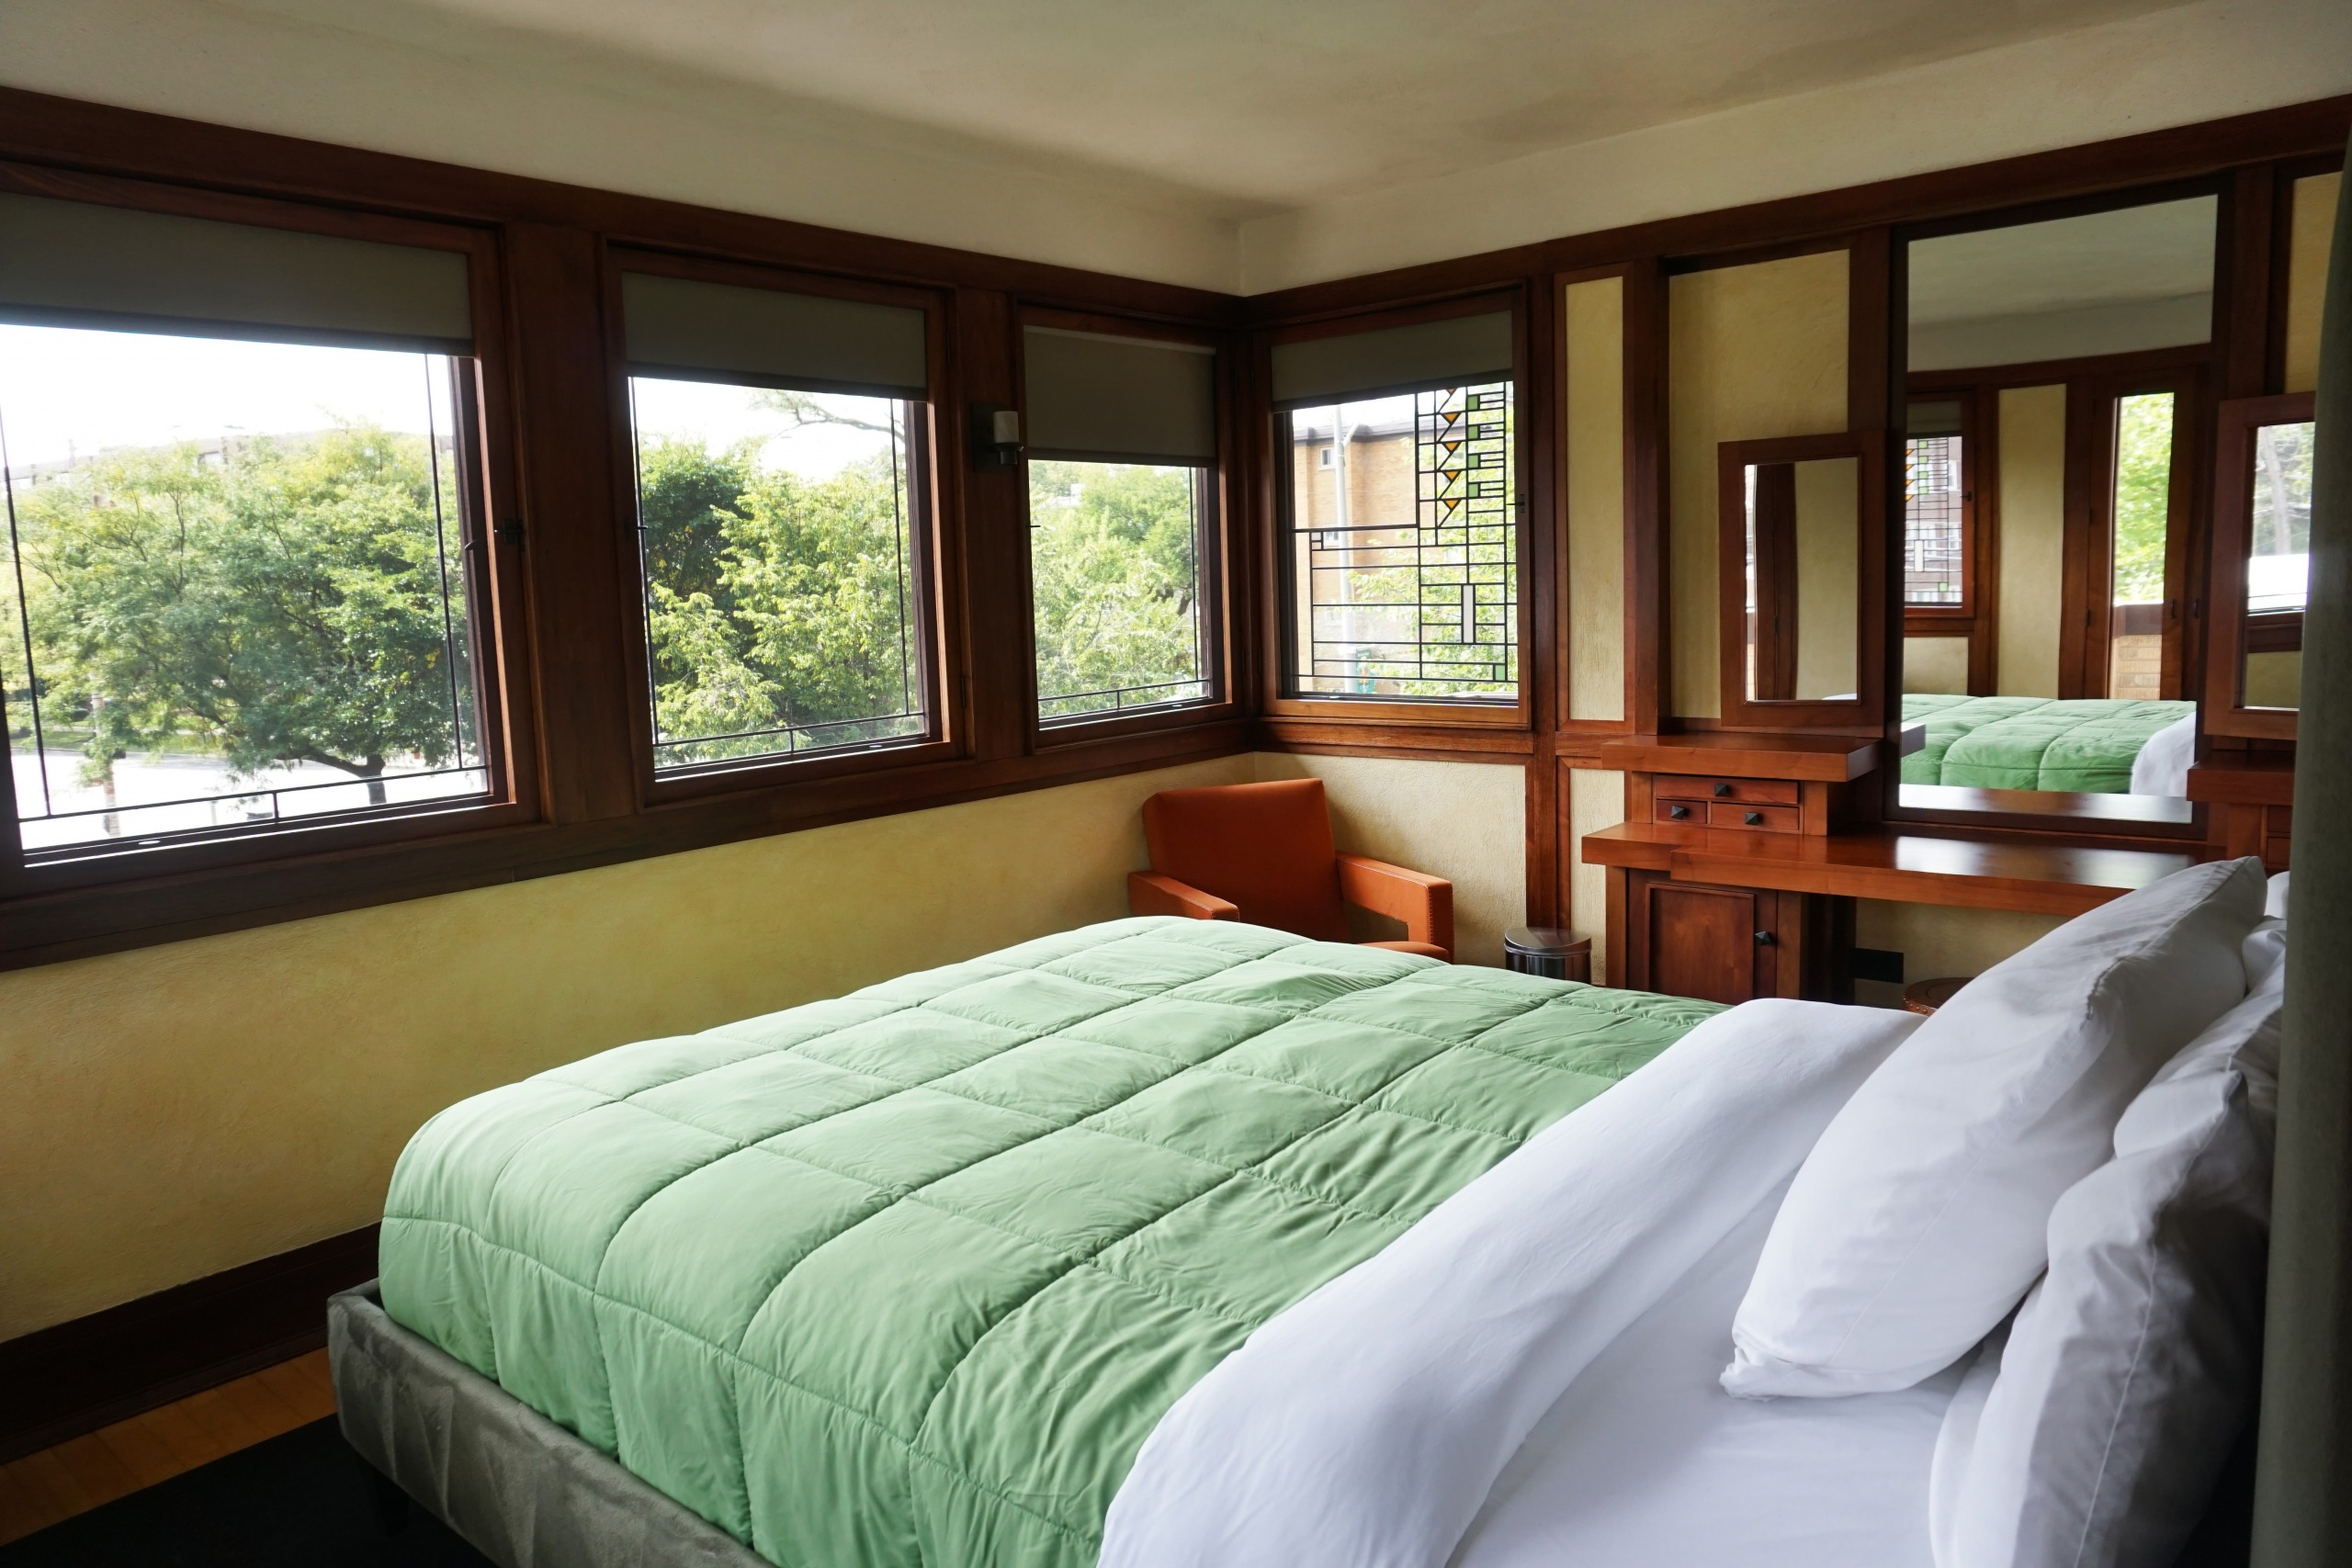 Stay in a Frank Lloyd Wright Home